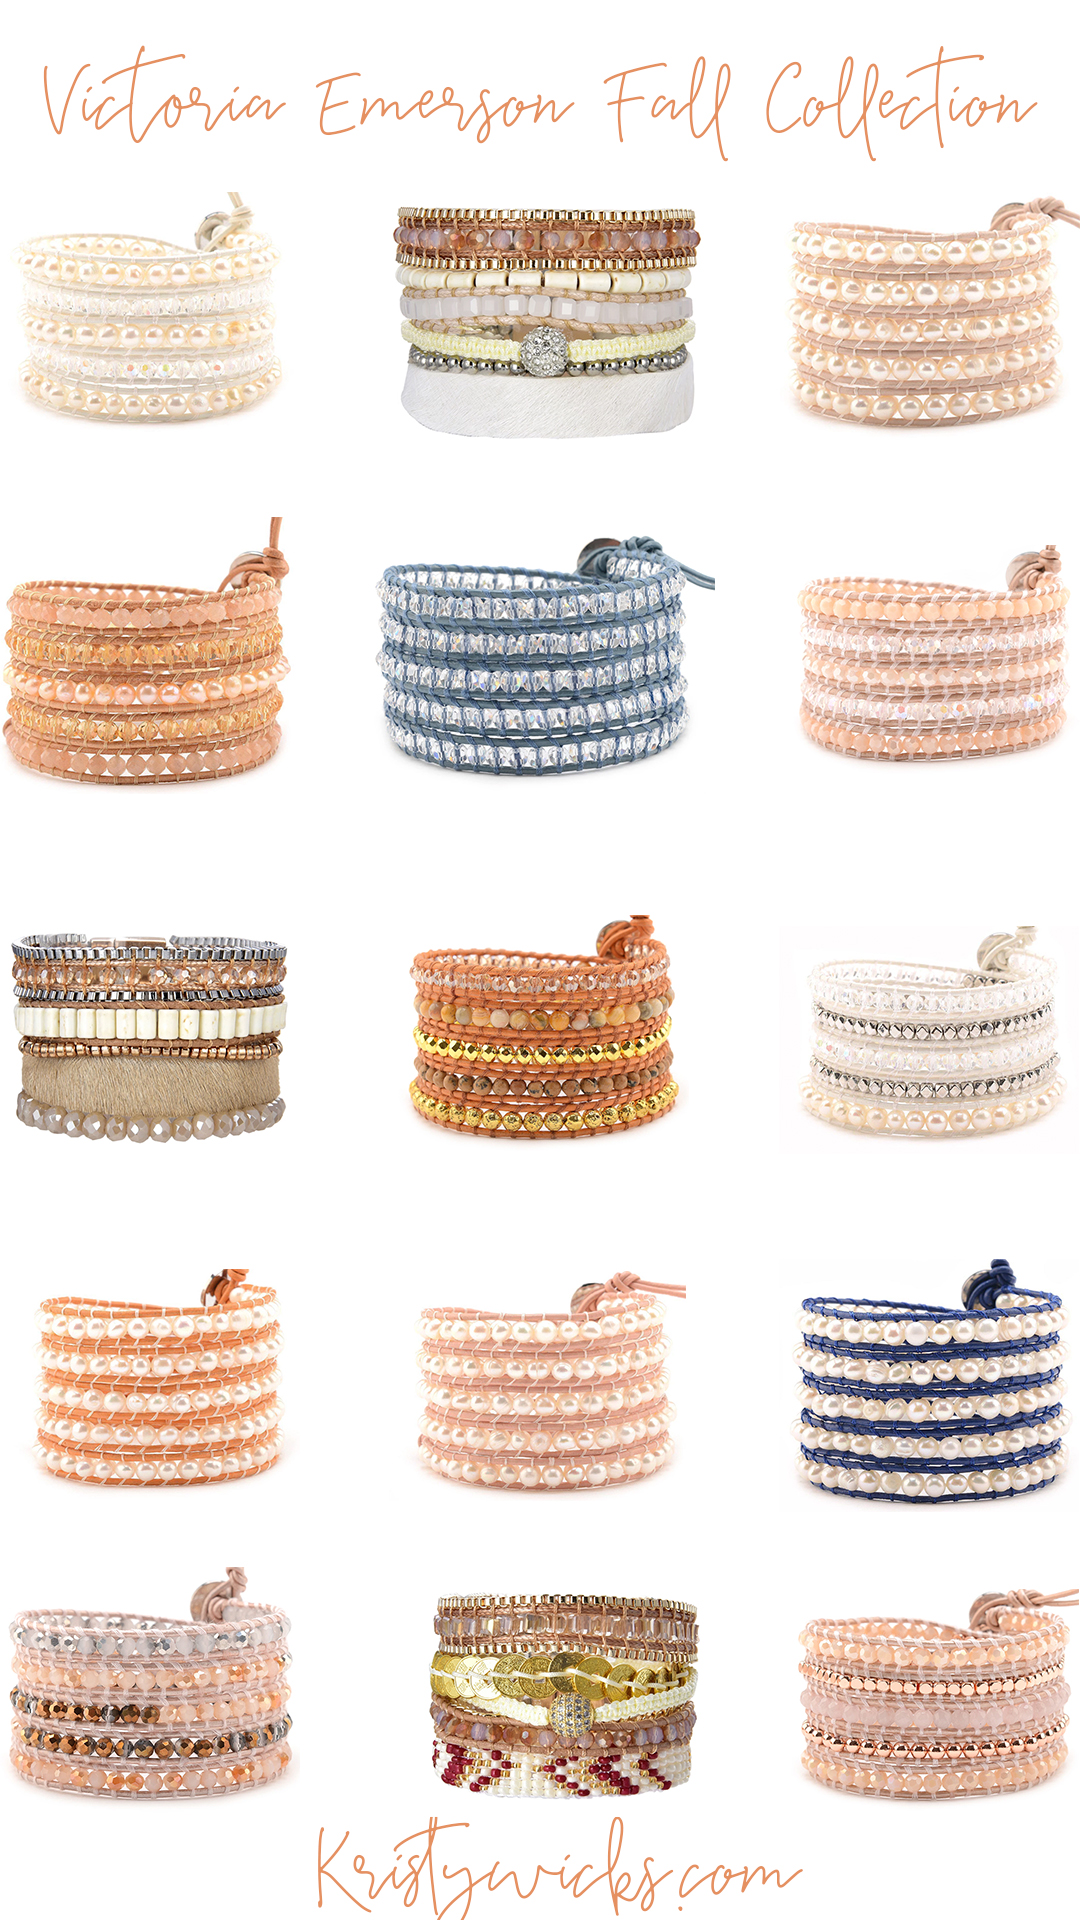 Victoria Emerson Wrap Bracelets on Sale - My favorite jewelry pieces are on 30% off right now.. their newest Fall collection is gorgeous!